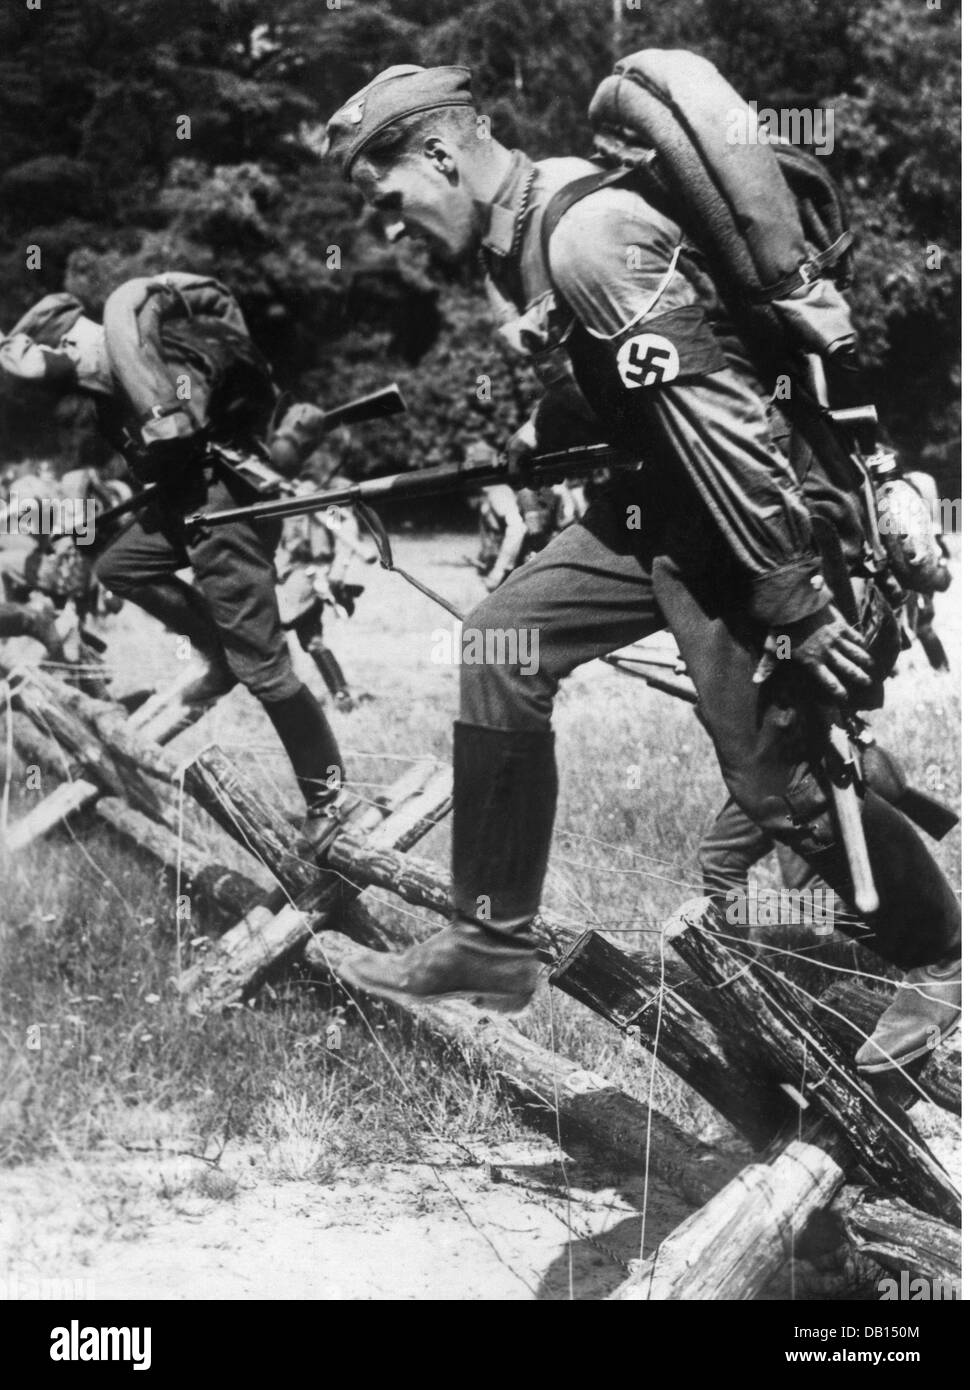 Nazism / National Socialism, organisations, Sturmabteilung (SA, Stormtroopers), sports, steeplechase, 1930s, Additional - Stock Image